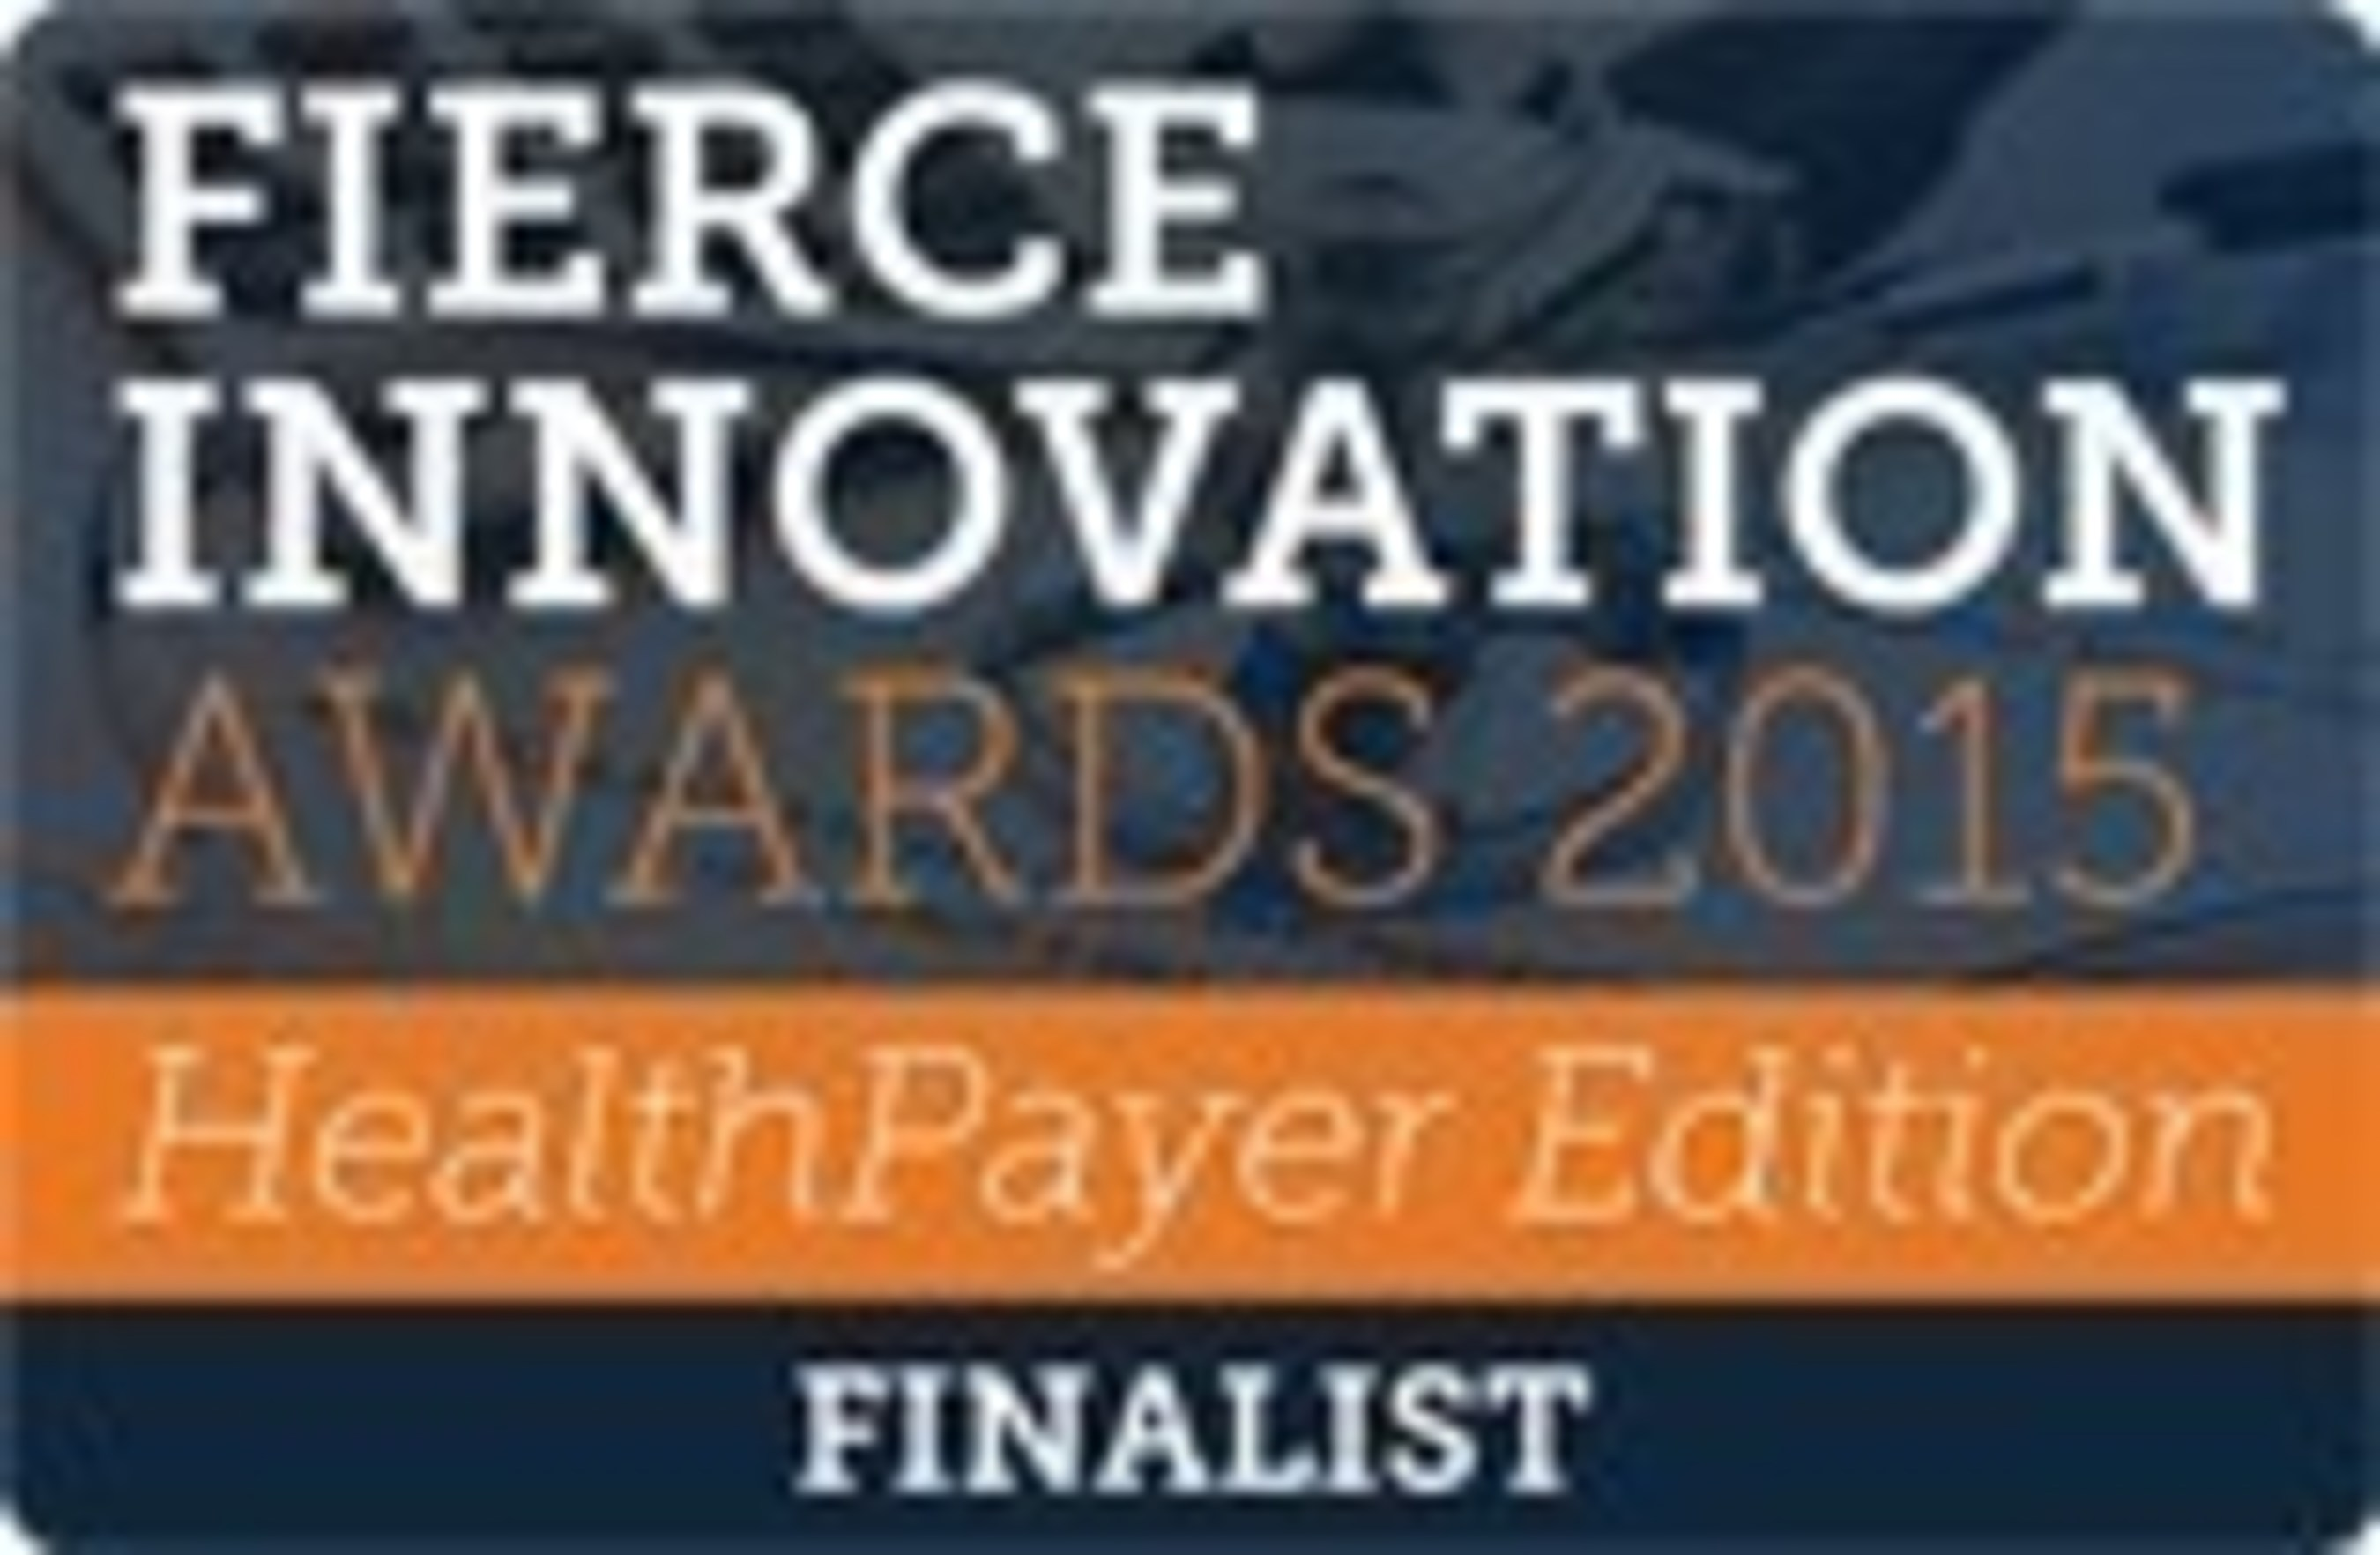 Fierce Innovation Awards: Healthcare Edition Program Announces Finalists, BIOCLAIM, Inc. Recognized